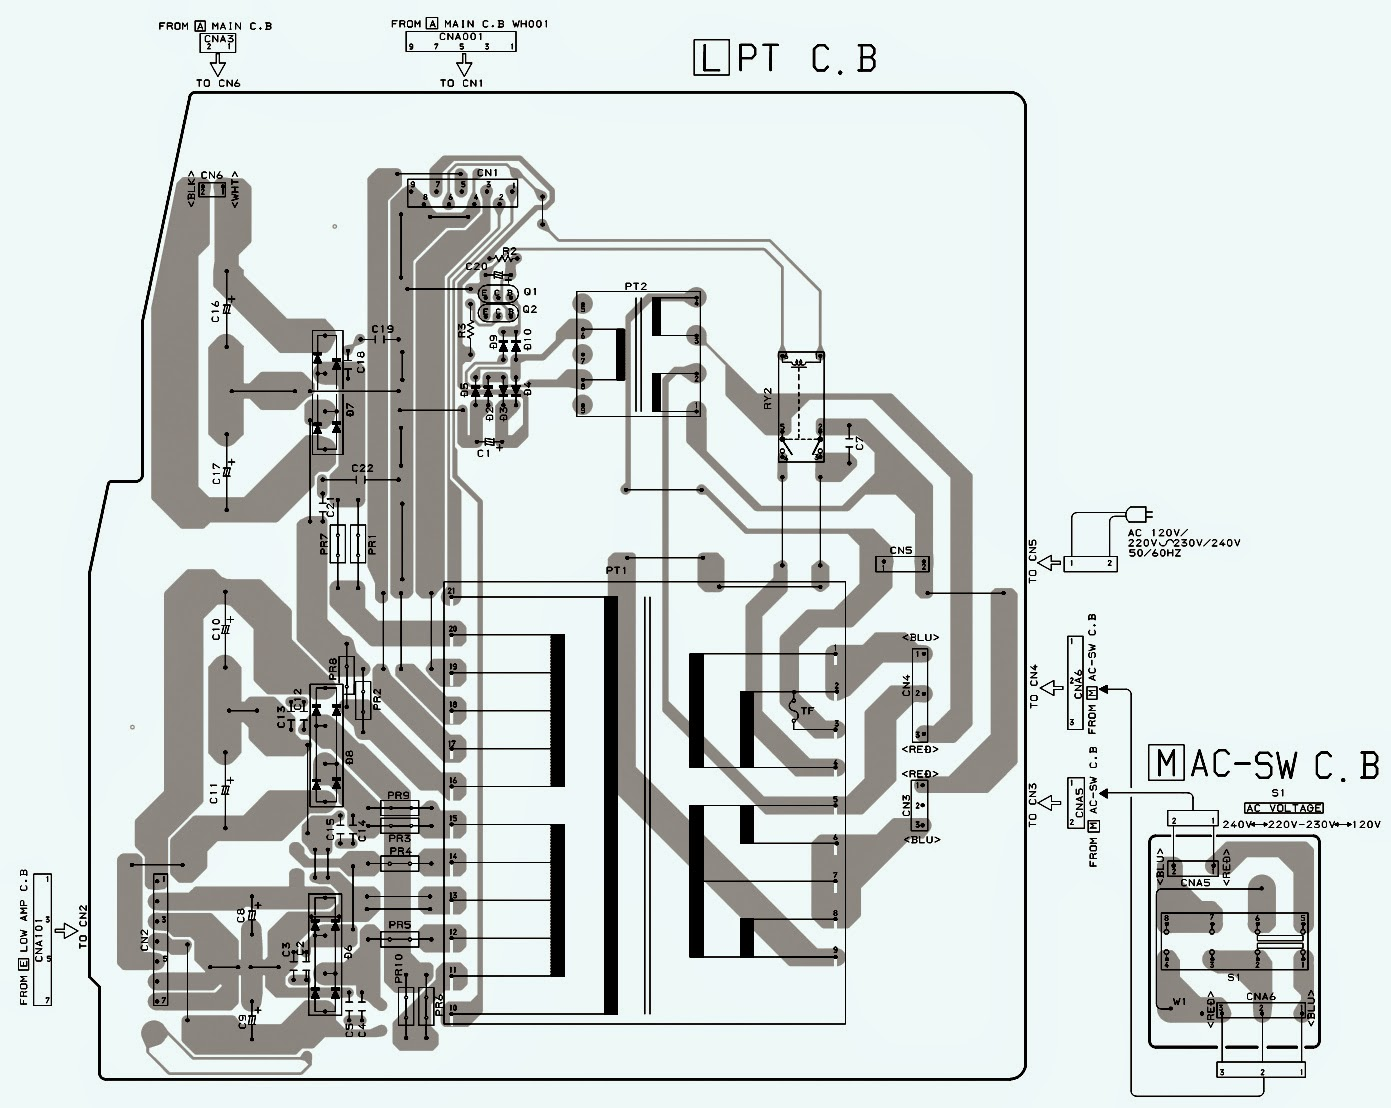 pwb+power.bmp aiwa xh a1060 compact disc stereo system schematics electro help aiwa cdc-x144 wiring diagram at aneh.co